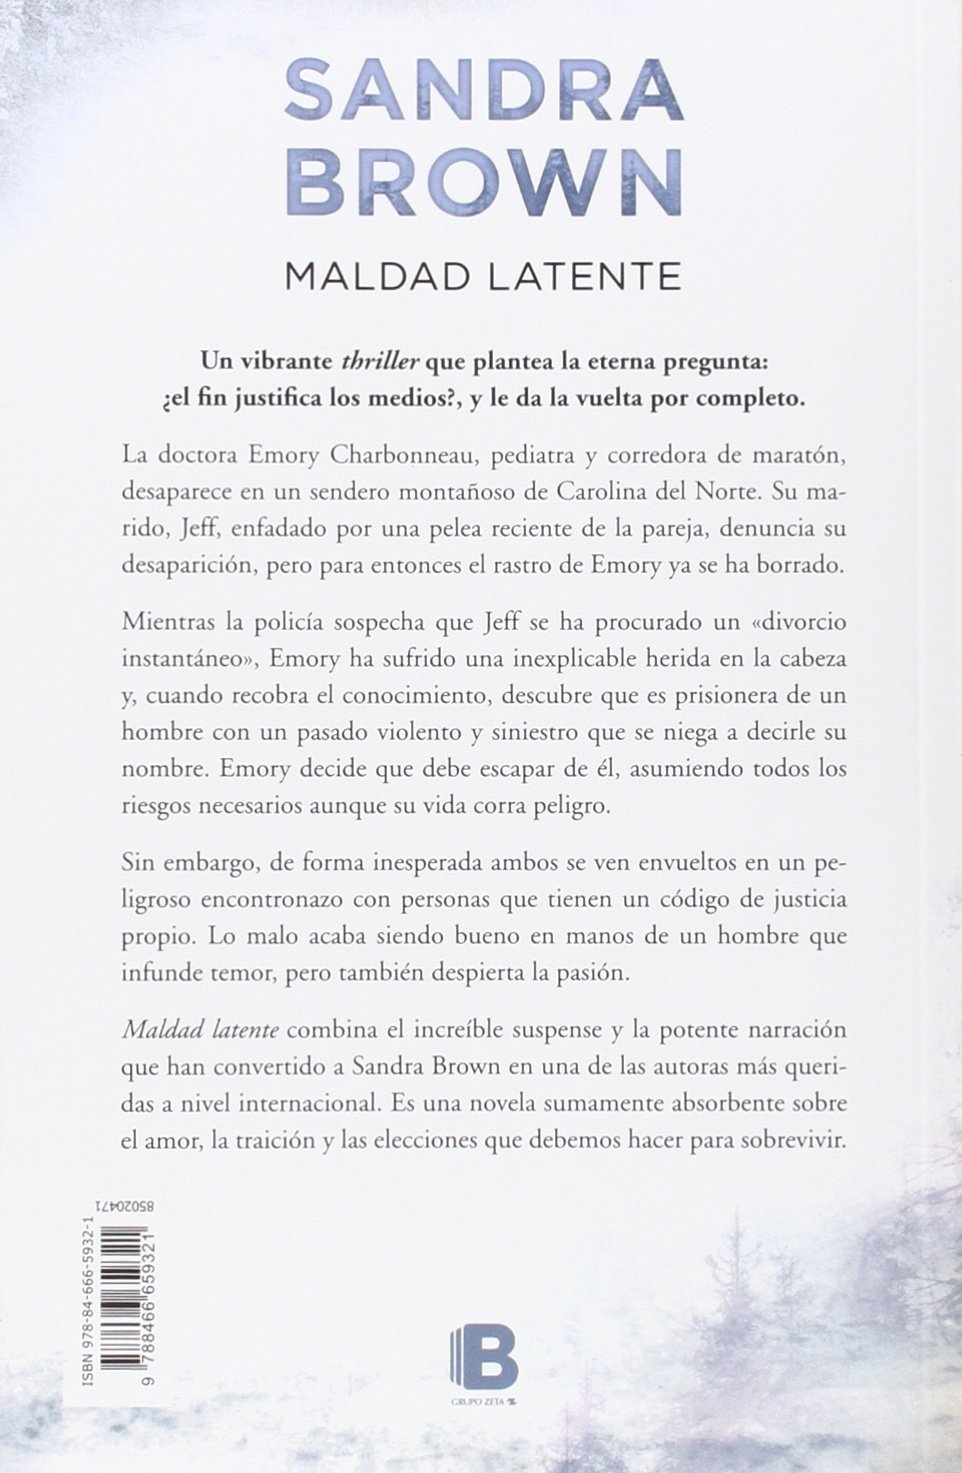 Amazon.com: Maldad latente / Mean Streak (Spanish Edition) (9788466659321): Sandra Brown: Books